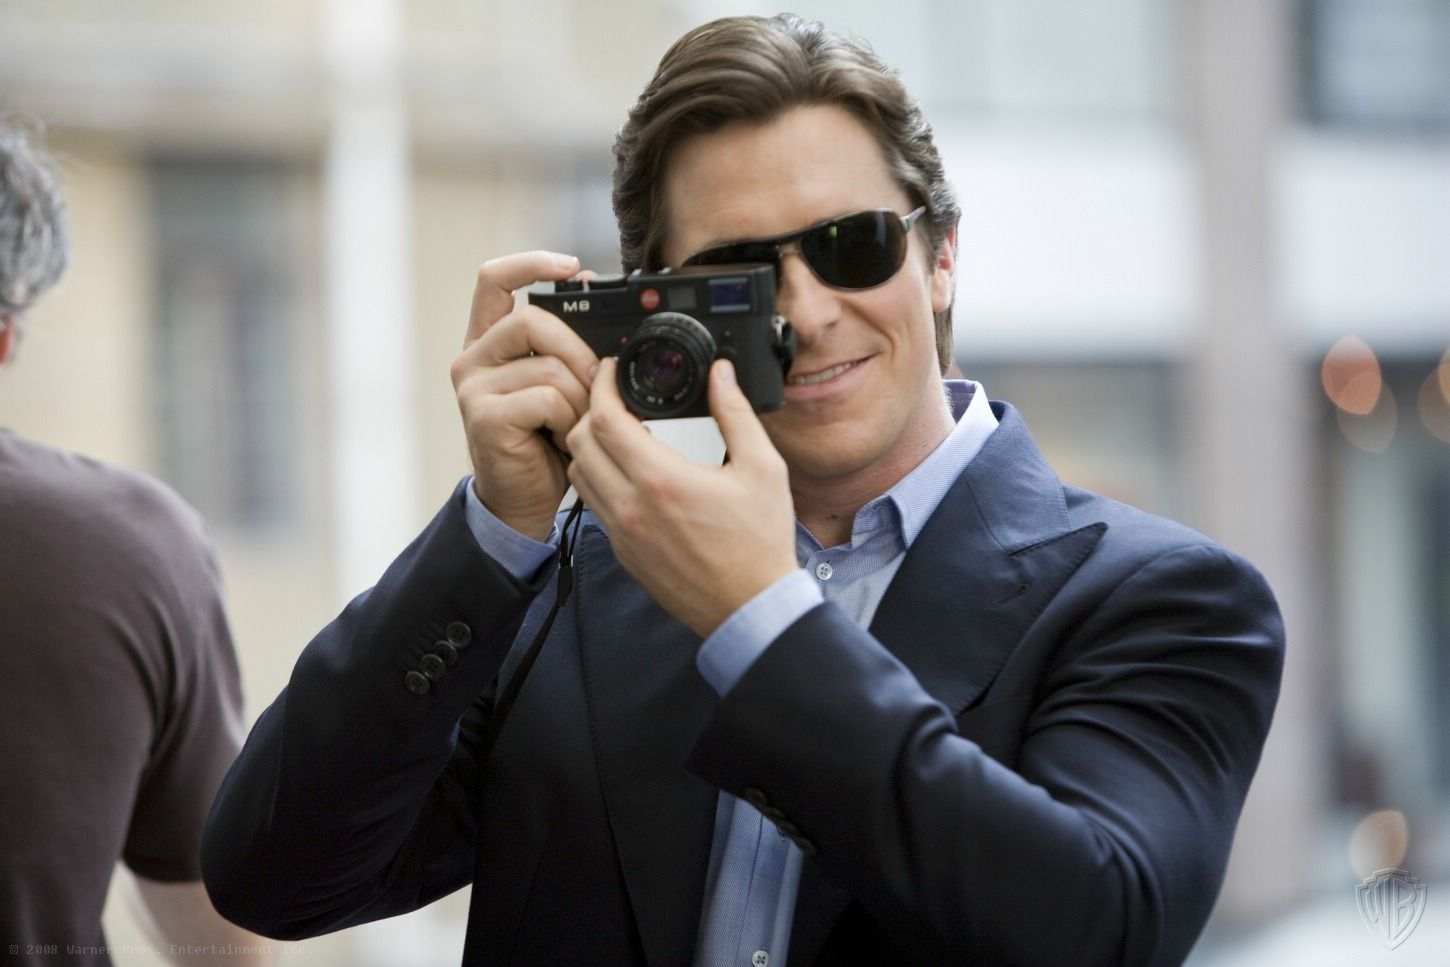 photos of Christian Bale - Check more at http://www.picmoz.com/christian-bale/